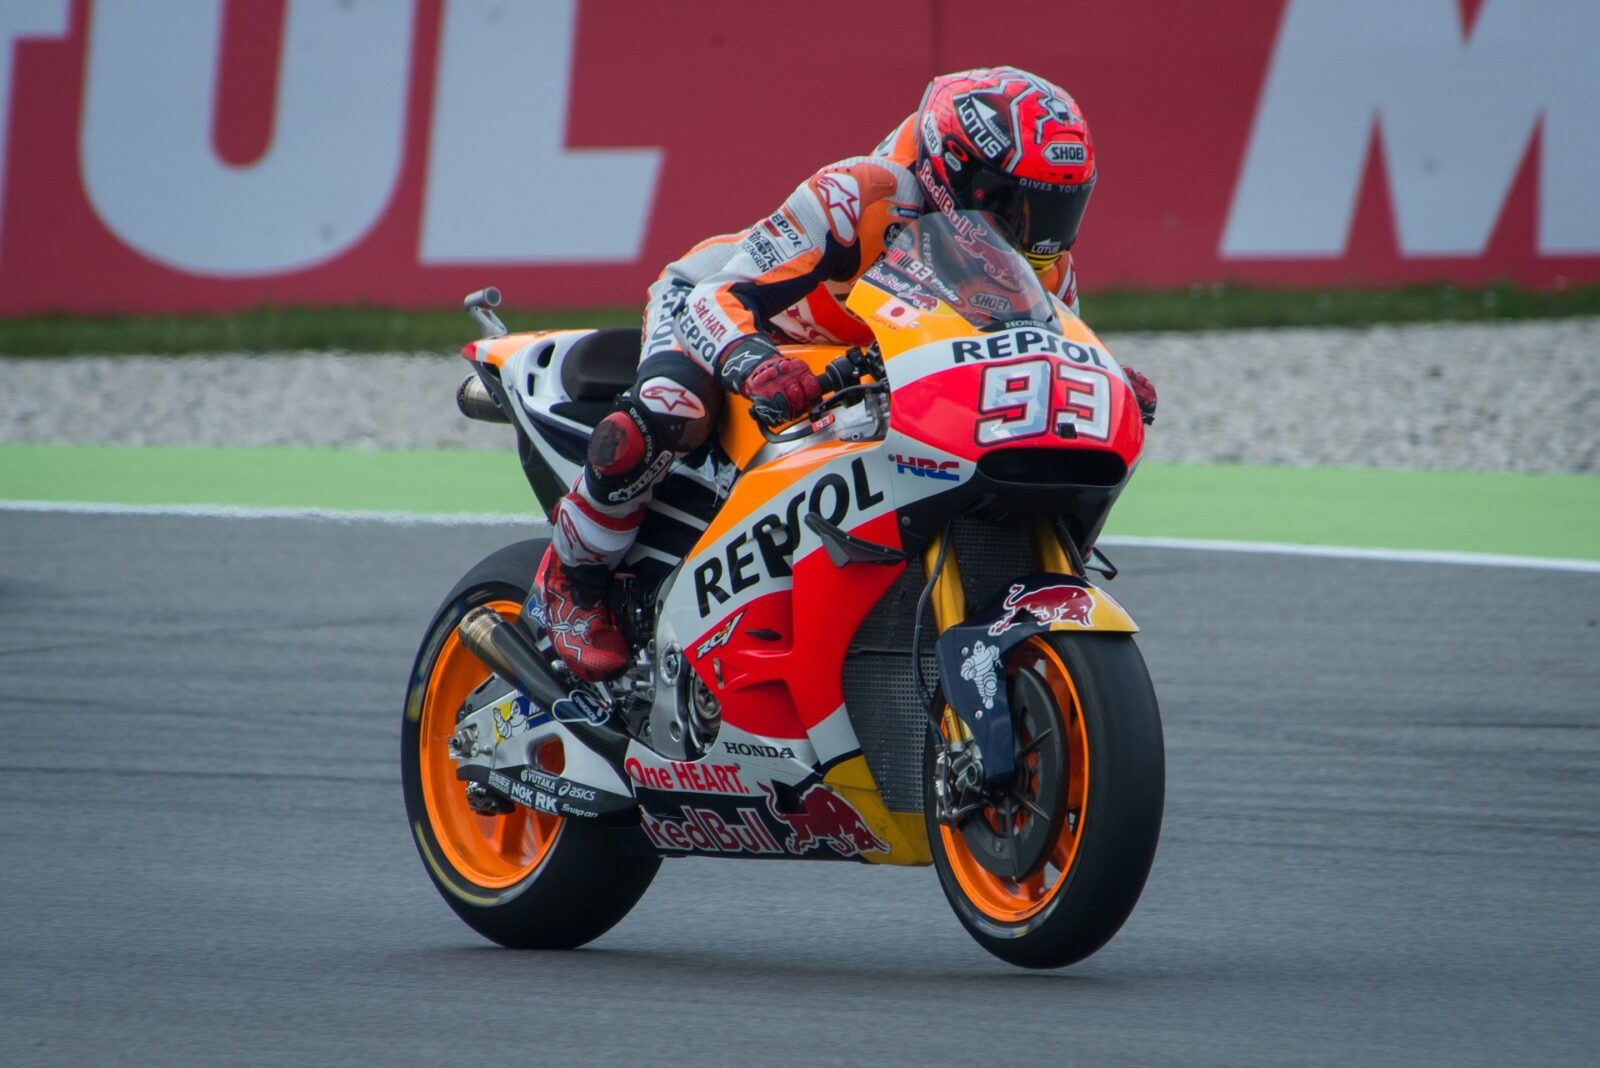 MARC MARQUEZ: EVERYTHING ABOUT EL CABRONCITO